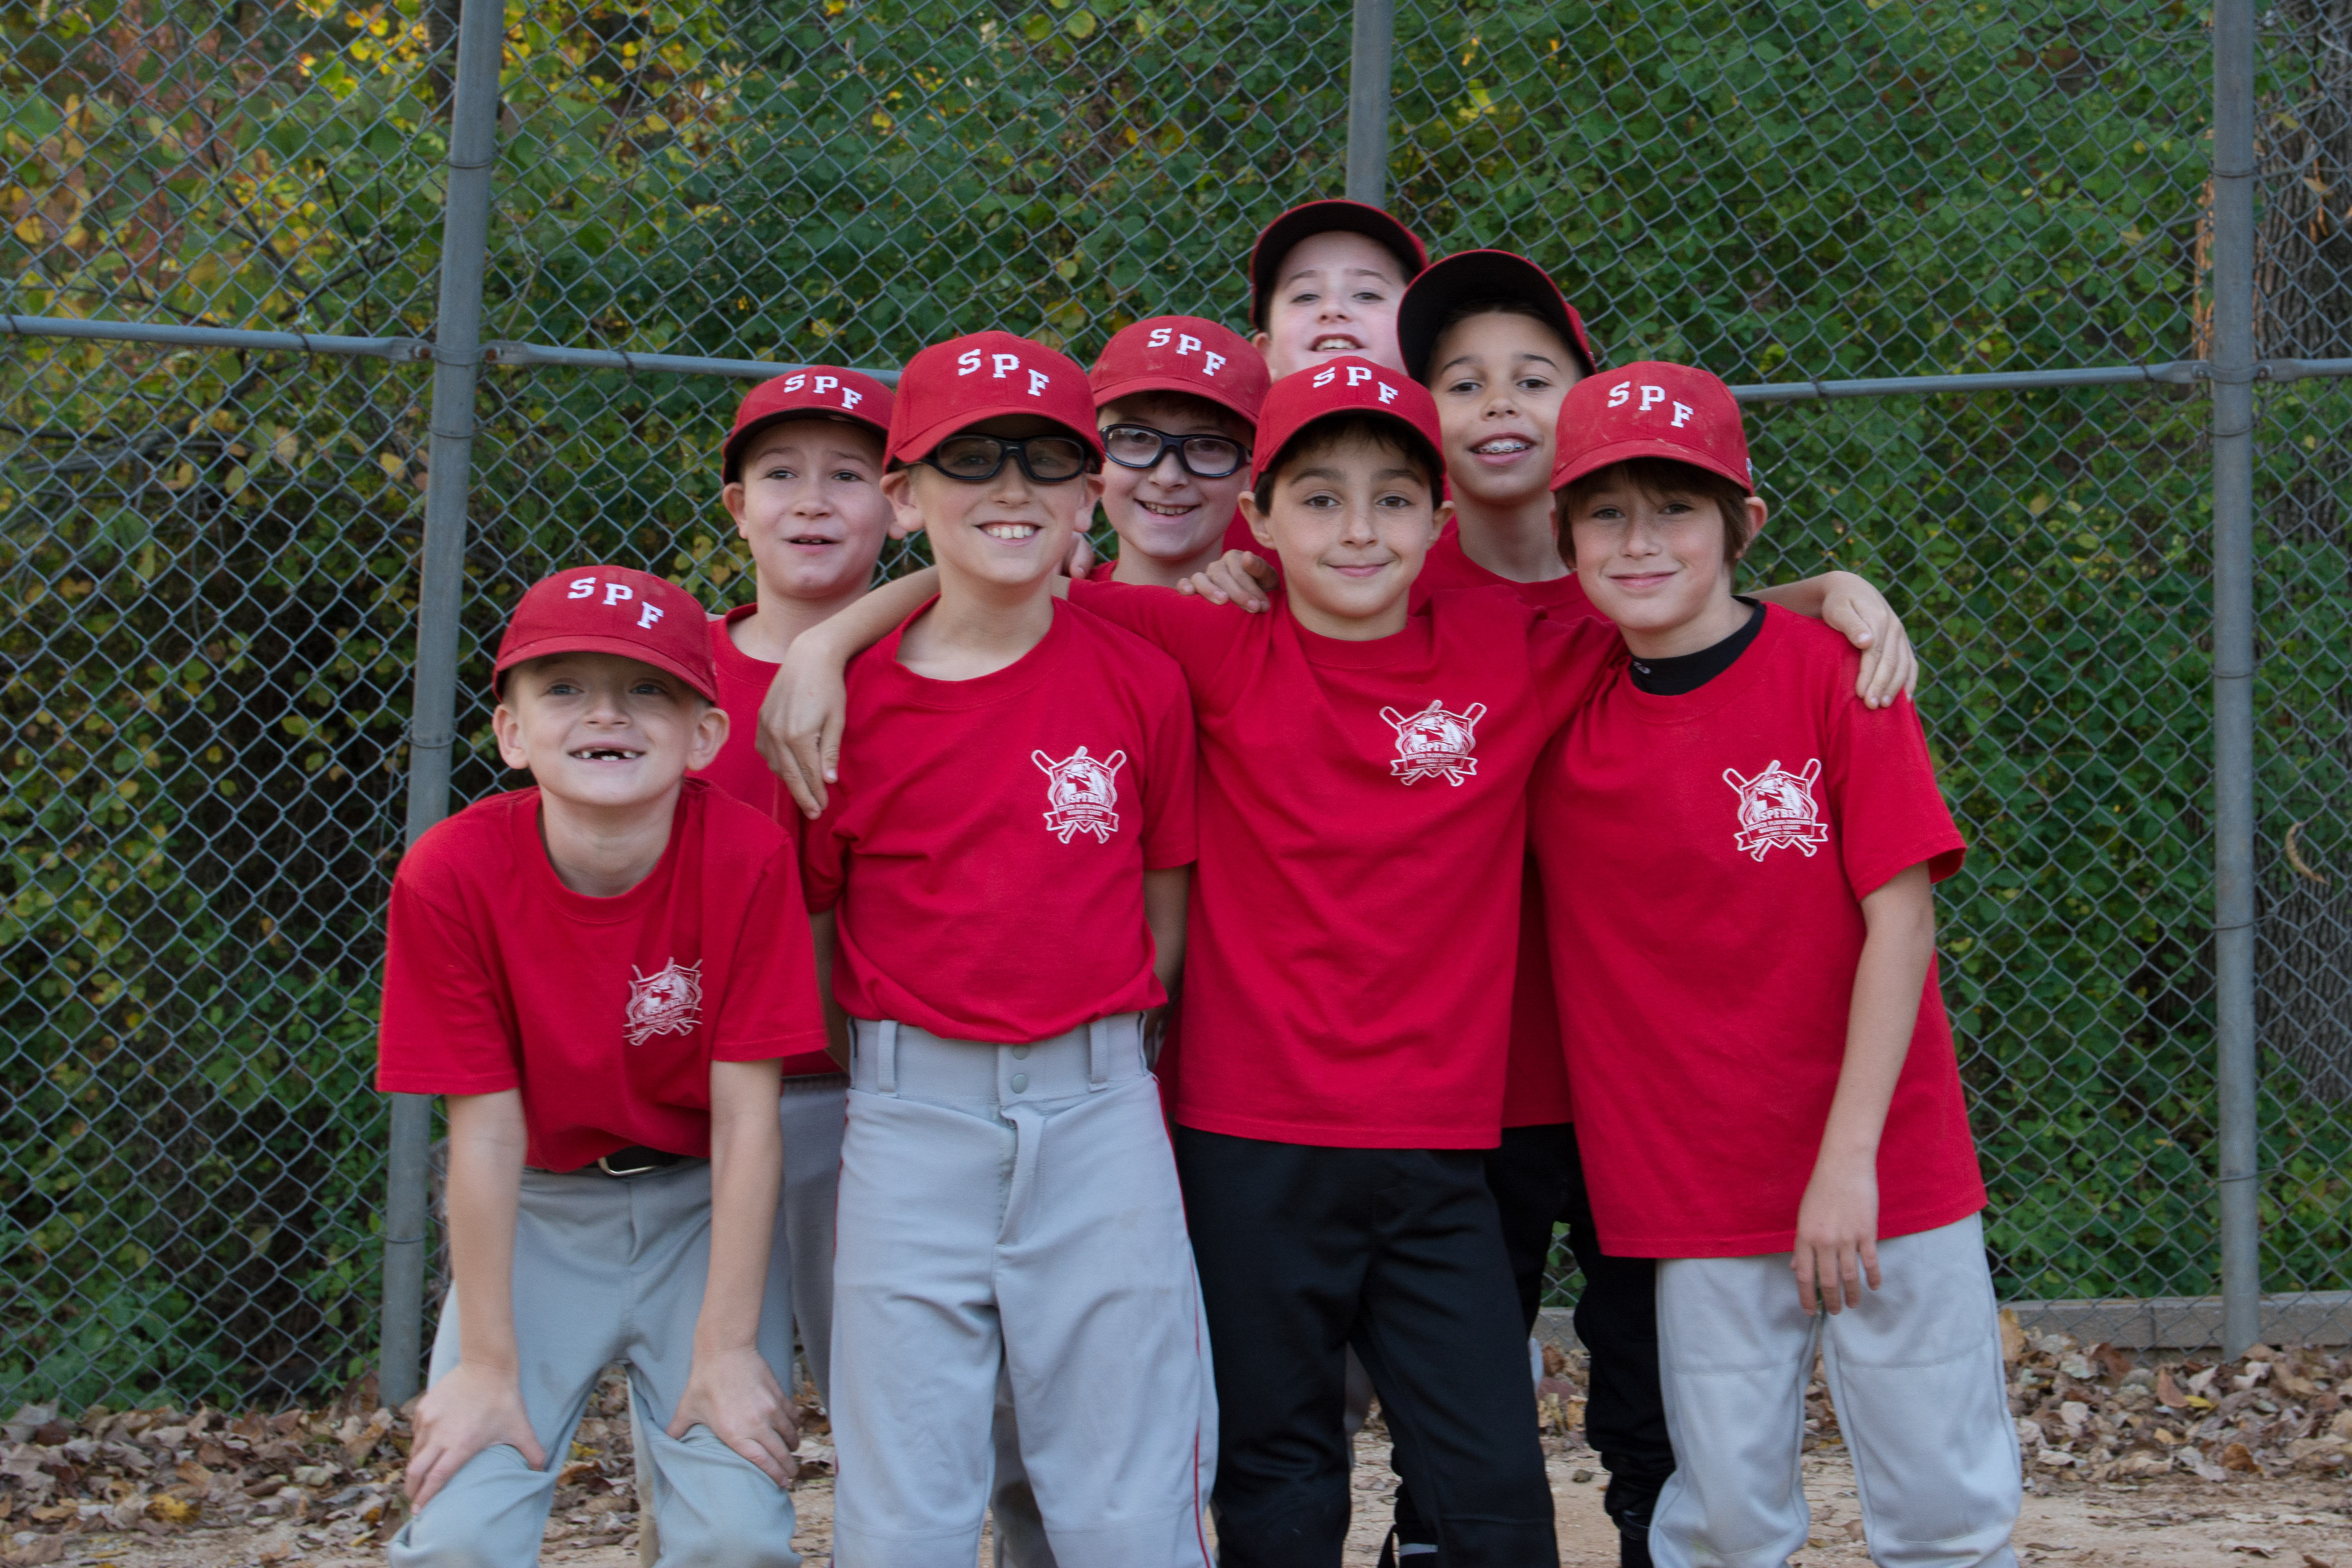 df042b9524cfba47e40e_Fall_Ball_2014_-_Team3.jpg